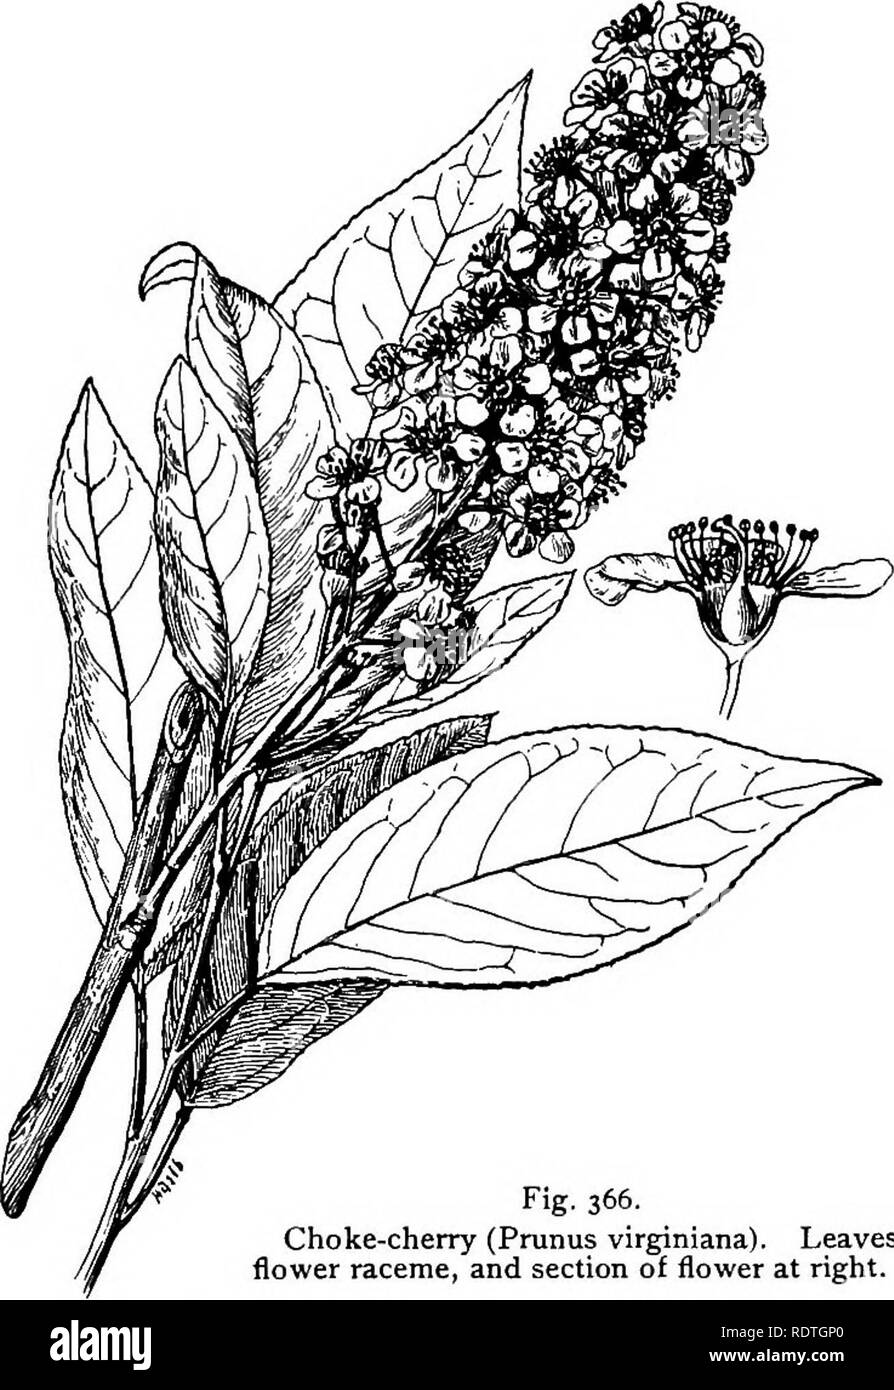 . Elementary botany. Botany. PLANT FAMILIES: POMACEM. 277 are at first perigynous, but become epigynous (upon the gynce- cium) by the fusion of the receptacle with the carpels. The floral. Fig. 366. Choke-cherry (Primus virginiana). Leaves, flower raceme, and section of flower at right. formula is thus Ca5,Co5, Aio-5-5 or 10-10-5,G1-5. The carpels. Please note that these images are extracted from scanned page images that may have been digitally enhanced for readability - coloration and appearance of these illustrations may not perfectly resemble the original work.. Atkinson, George Francis, 18 - Stock Image